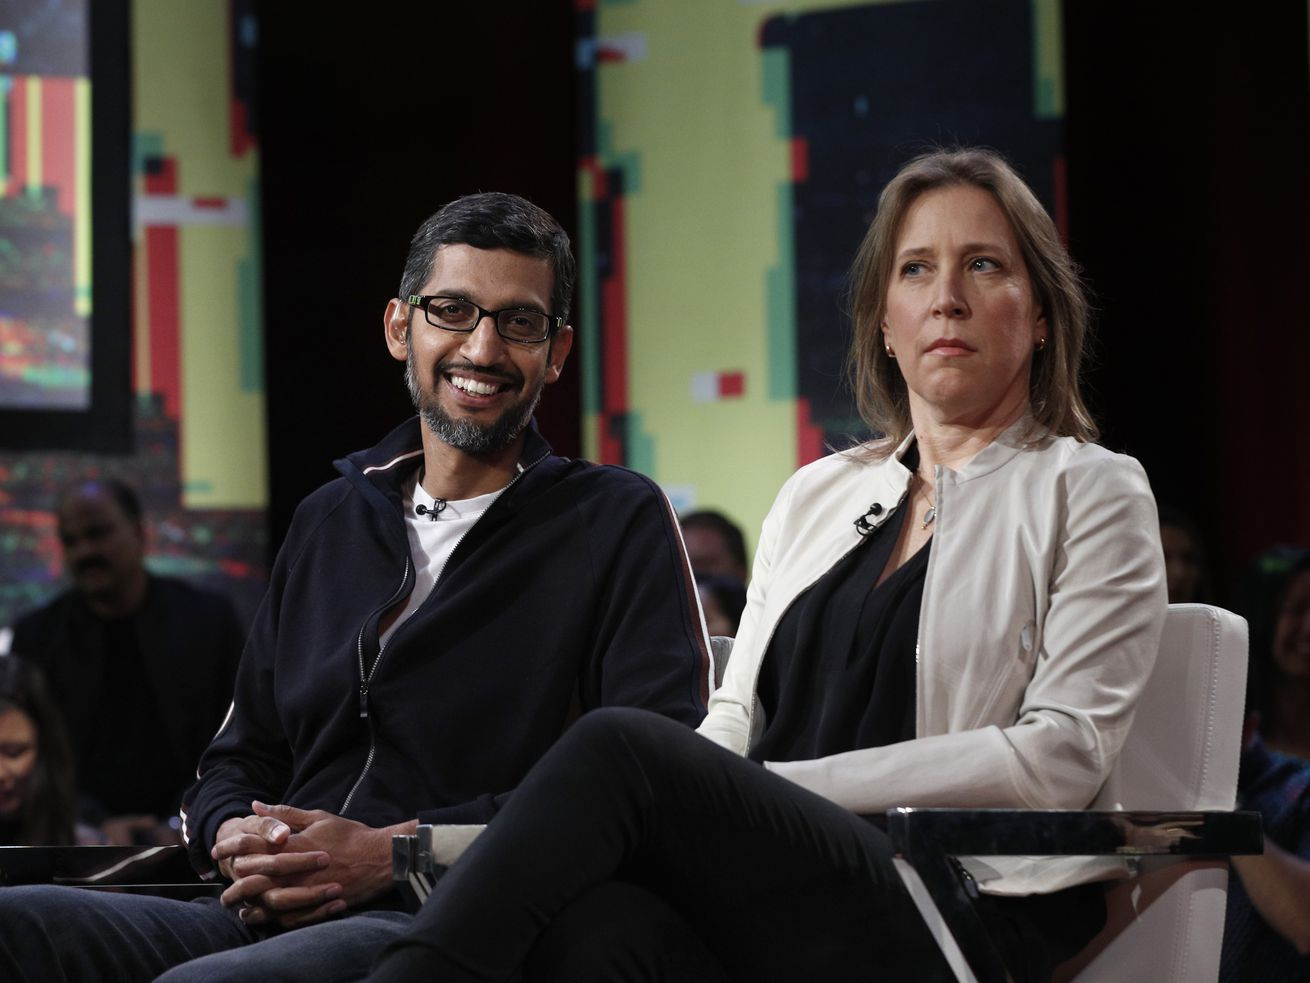 Co-hosts Ari Melber, of MSNBC and Kara Swisher with Recode talk with Google CEO Sundar Pichai, (left) and YouTube CEO Susan Wojcicki participate in an MSNBC/Recode Town Hall event at the Yerba Buena Center for The Arts on Friday, Jan. 19, 2018 in San Fr